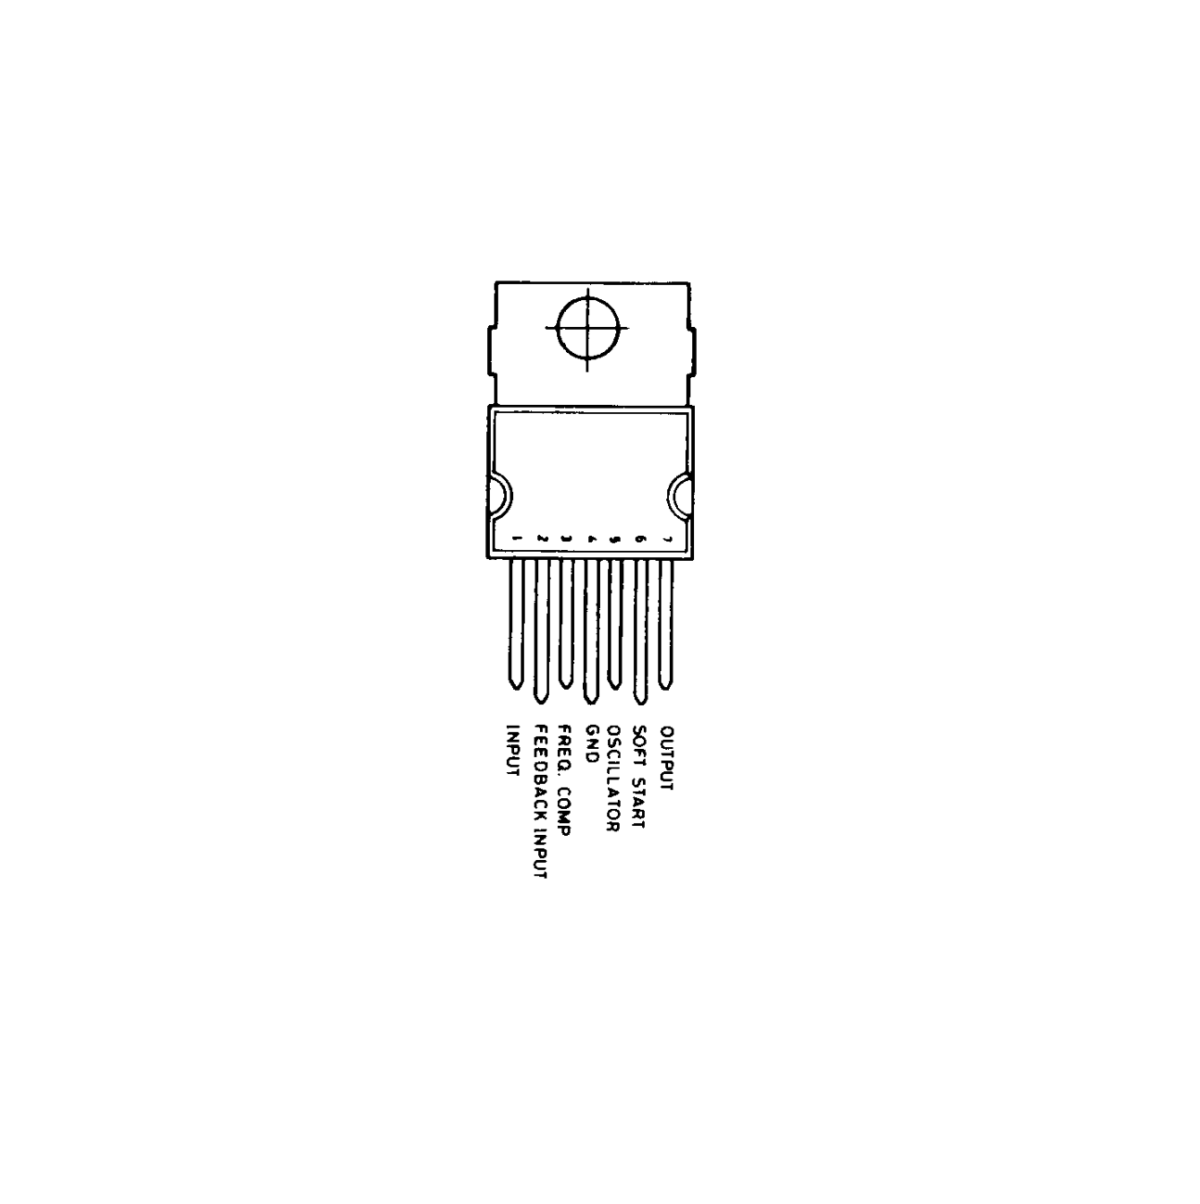 Sharvielectronics: Best Online Electronic Products Bangalore | L4960 IC 2.5A Switching Regulator IC | Electronic store in bangalore